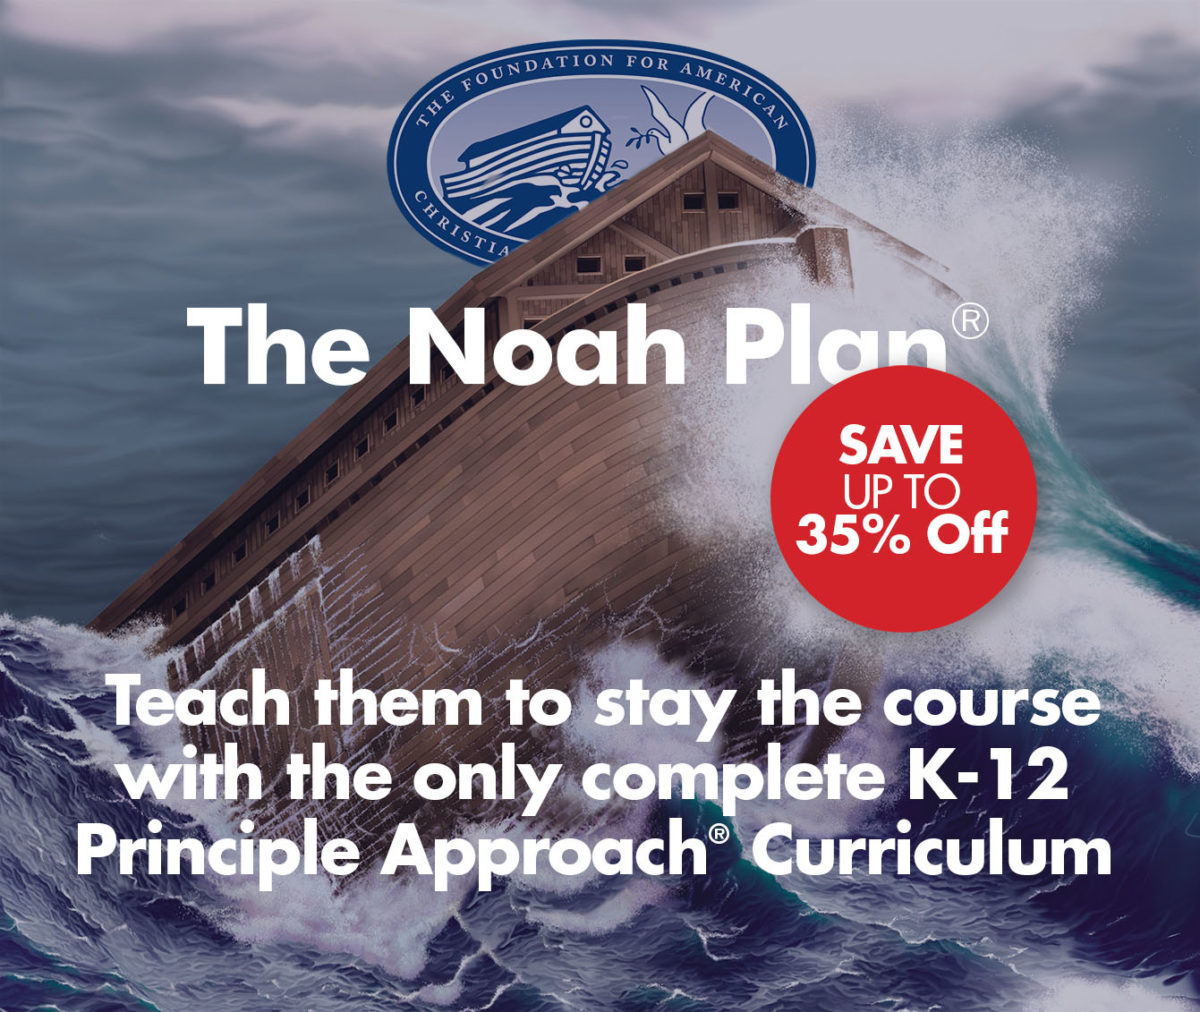 The Noah Plan curriculum places the Bible at the heart of every subject.